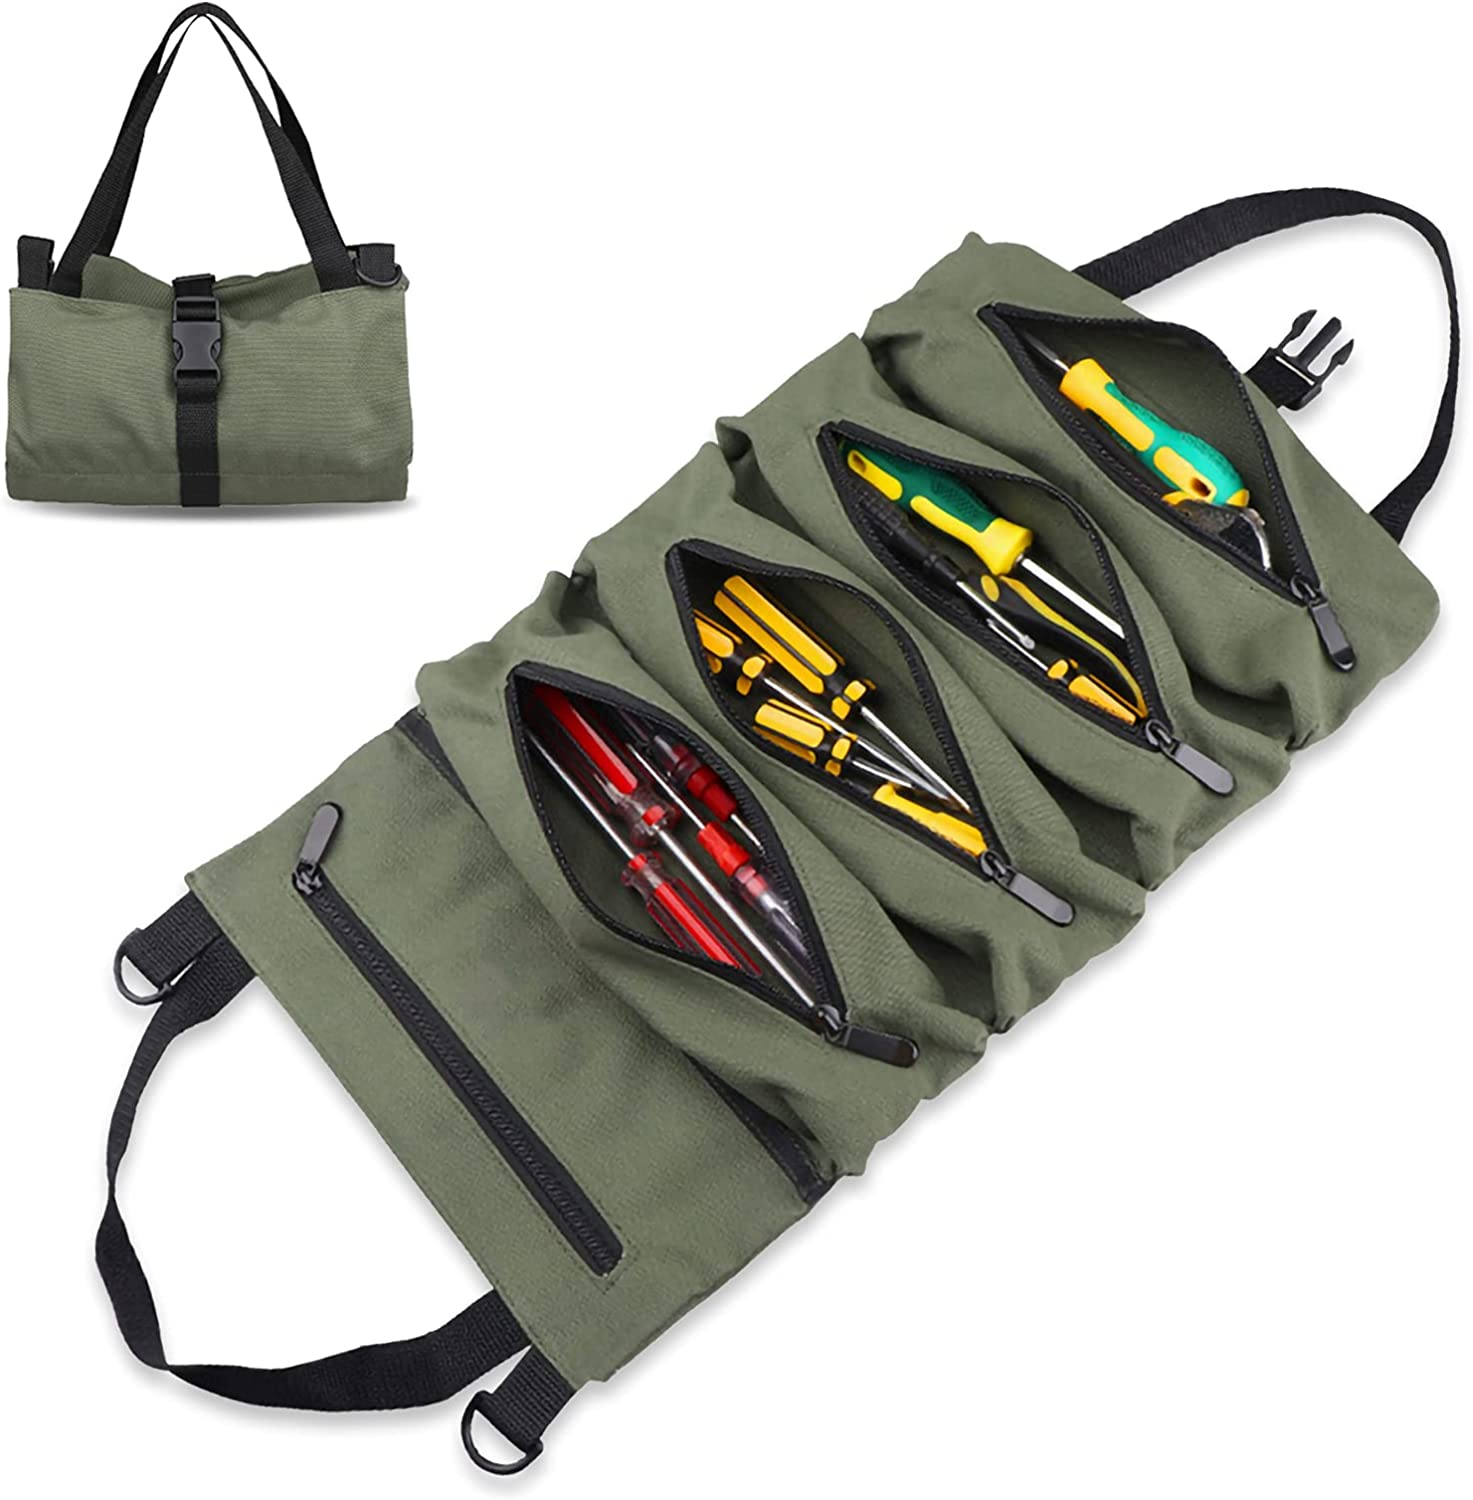 Tool roll up Max outlet 79% OFF bag Wrench Roll Up Organizer and Pouch